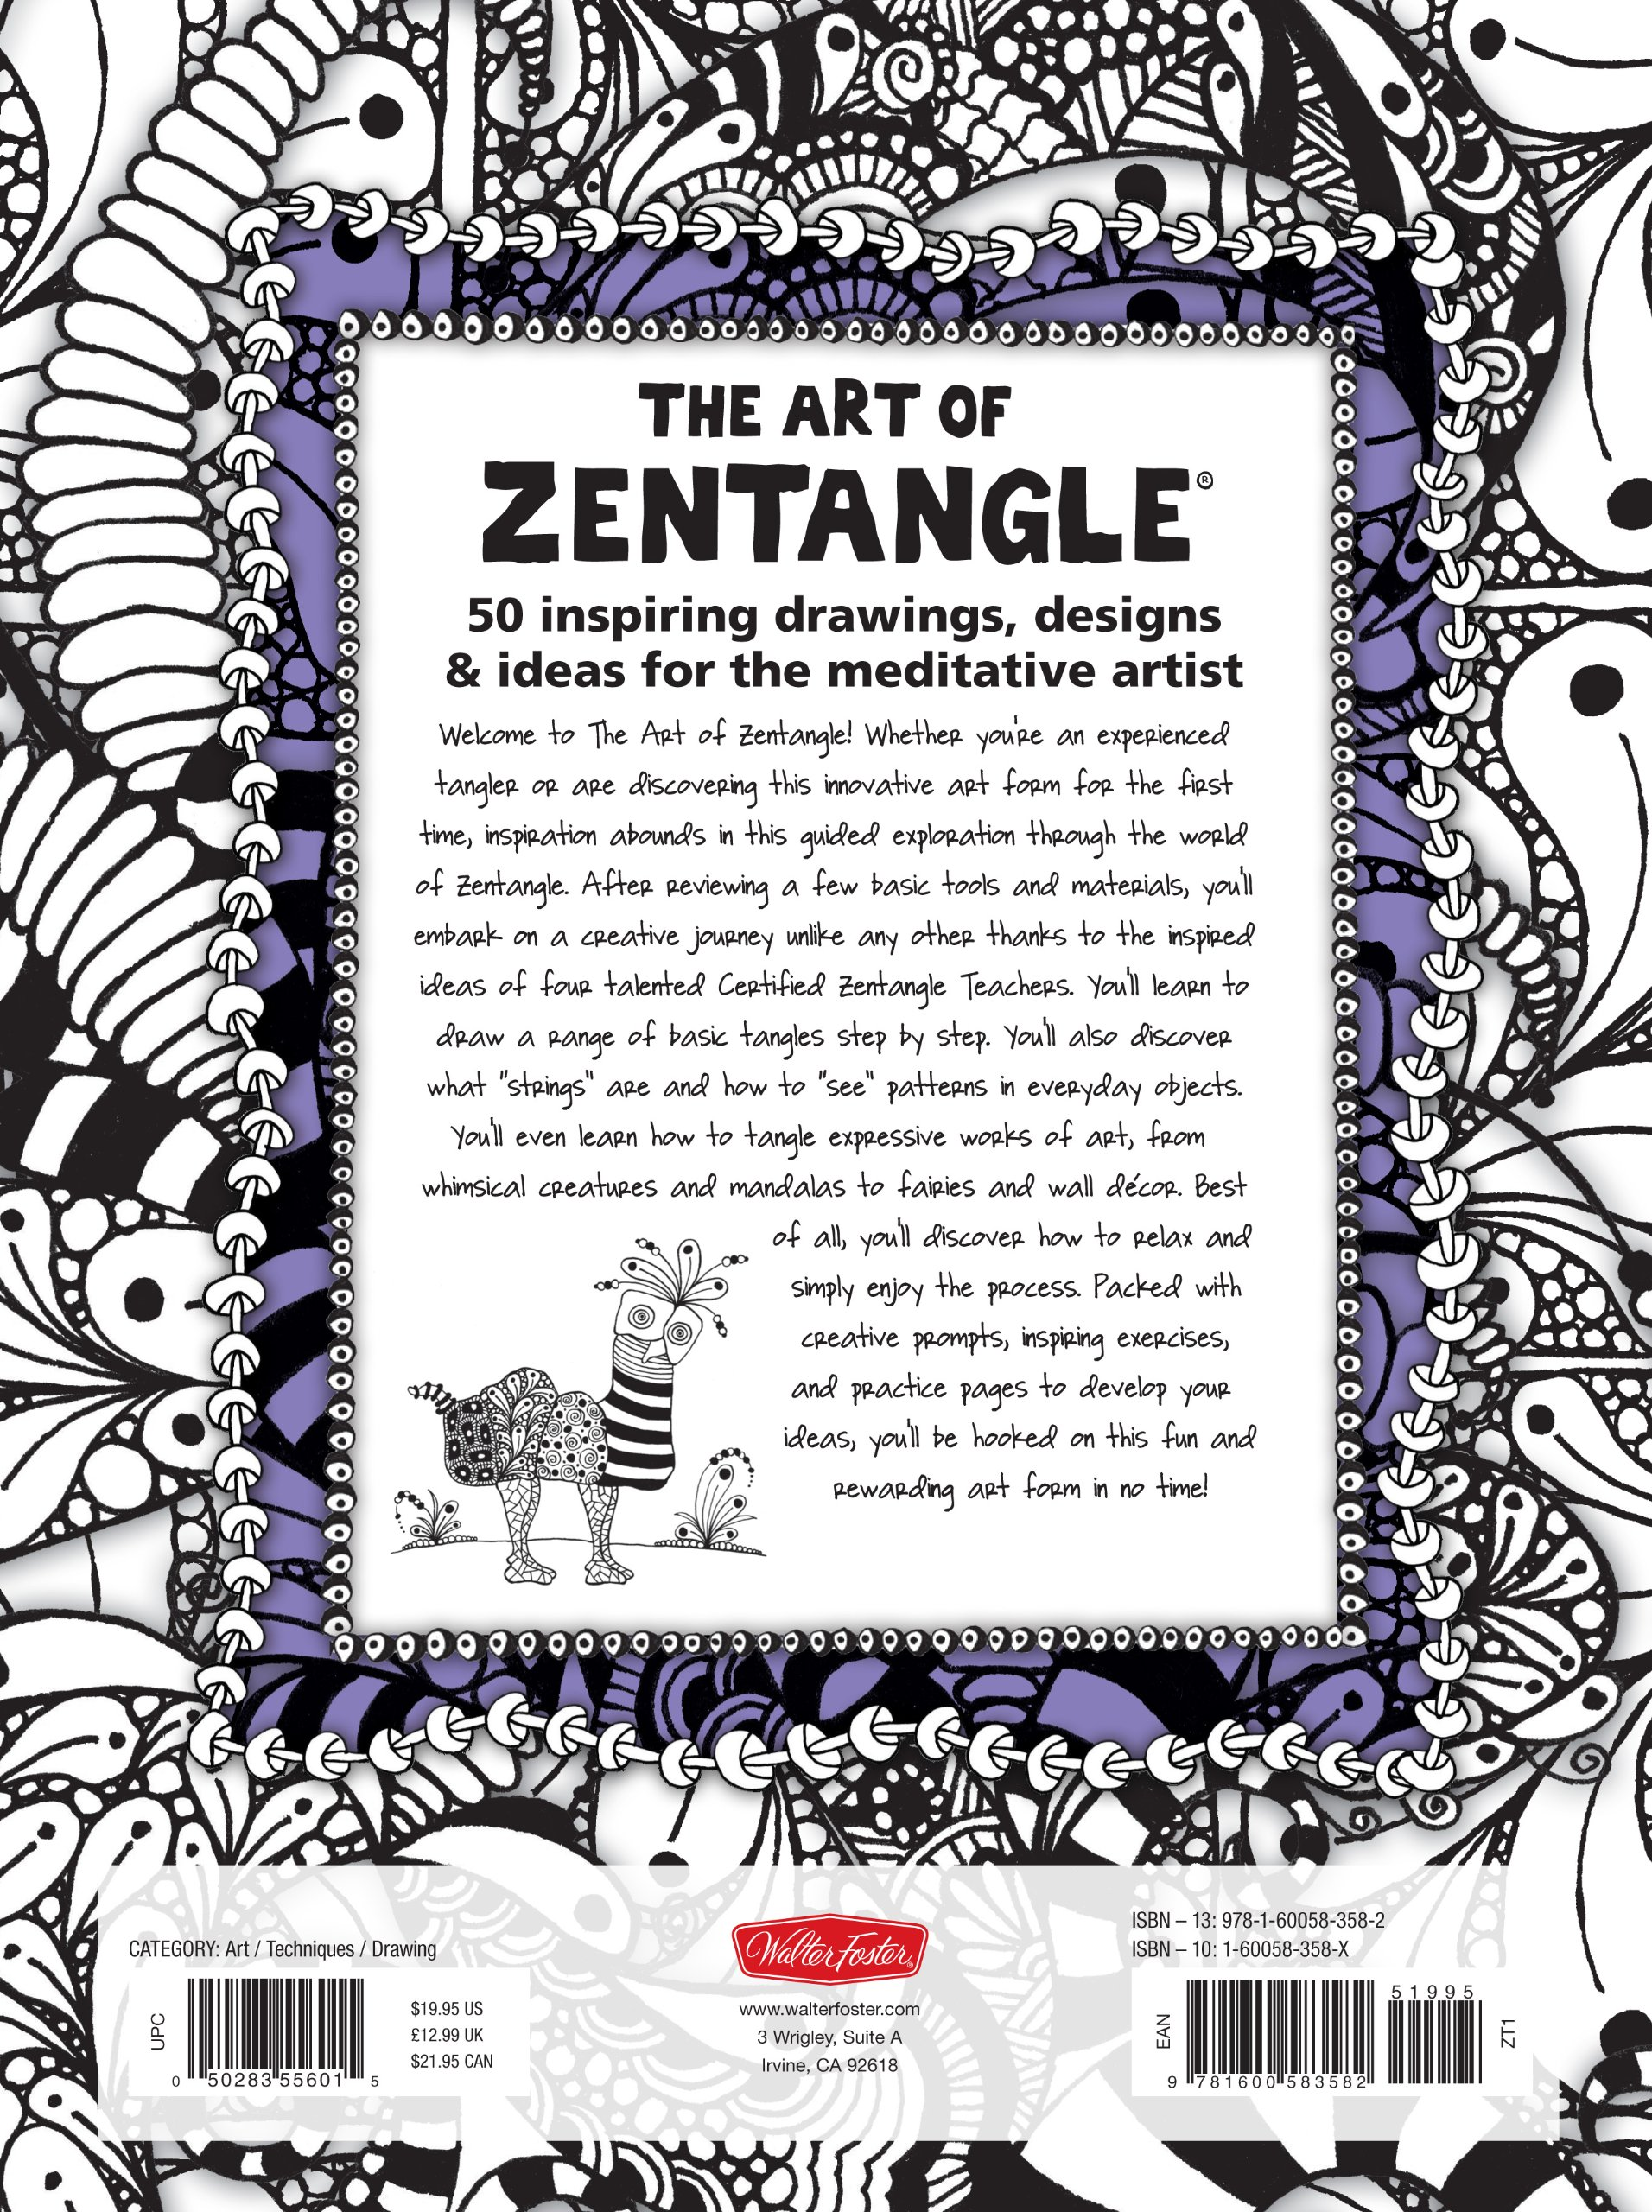 The art of zentangle 50 inspiring drawings designs ideas for the the art of zentangle 50 inspiring drawings designs ideas for the meditative artist margaret bremner norma j burnell penny raile lara williams fandeluxe Image collections